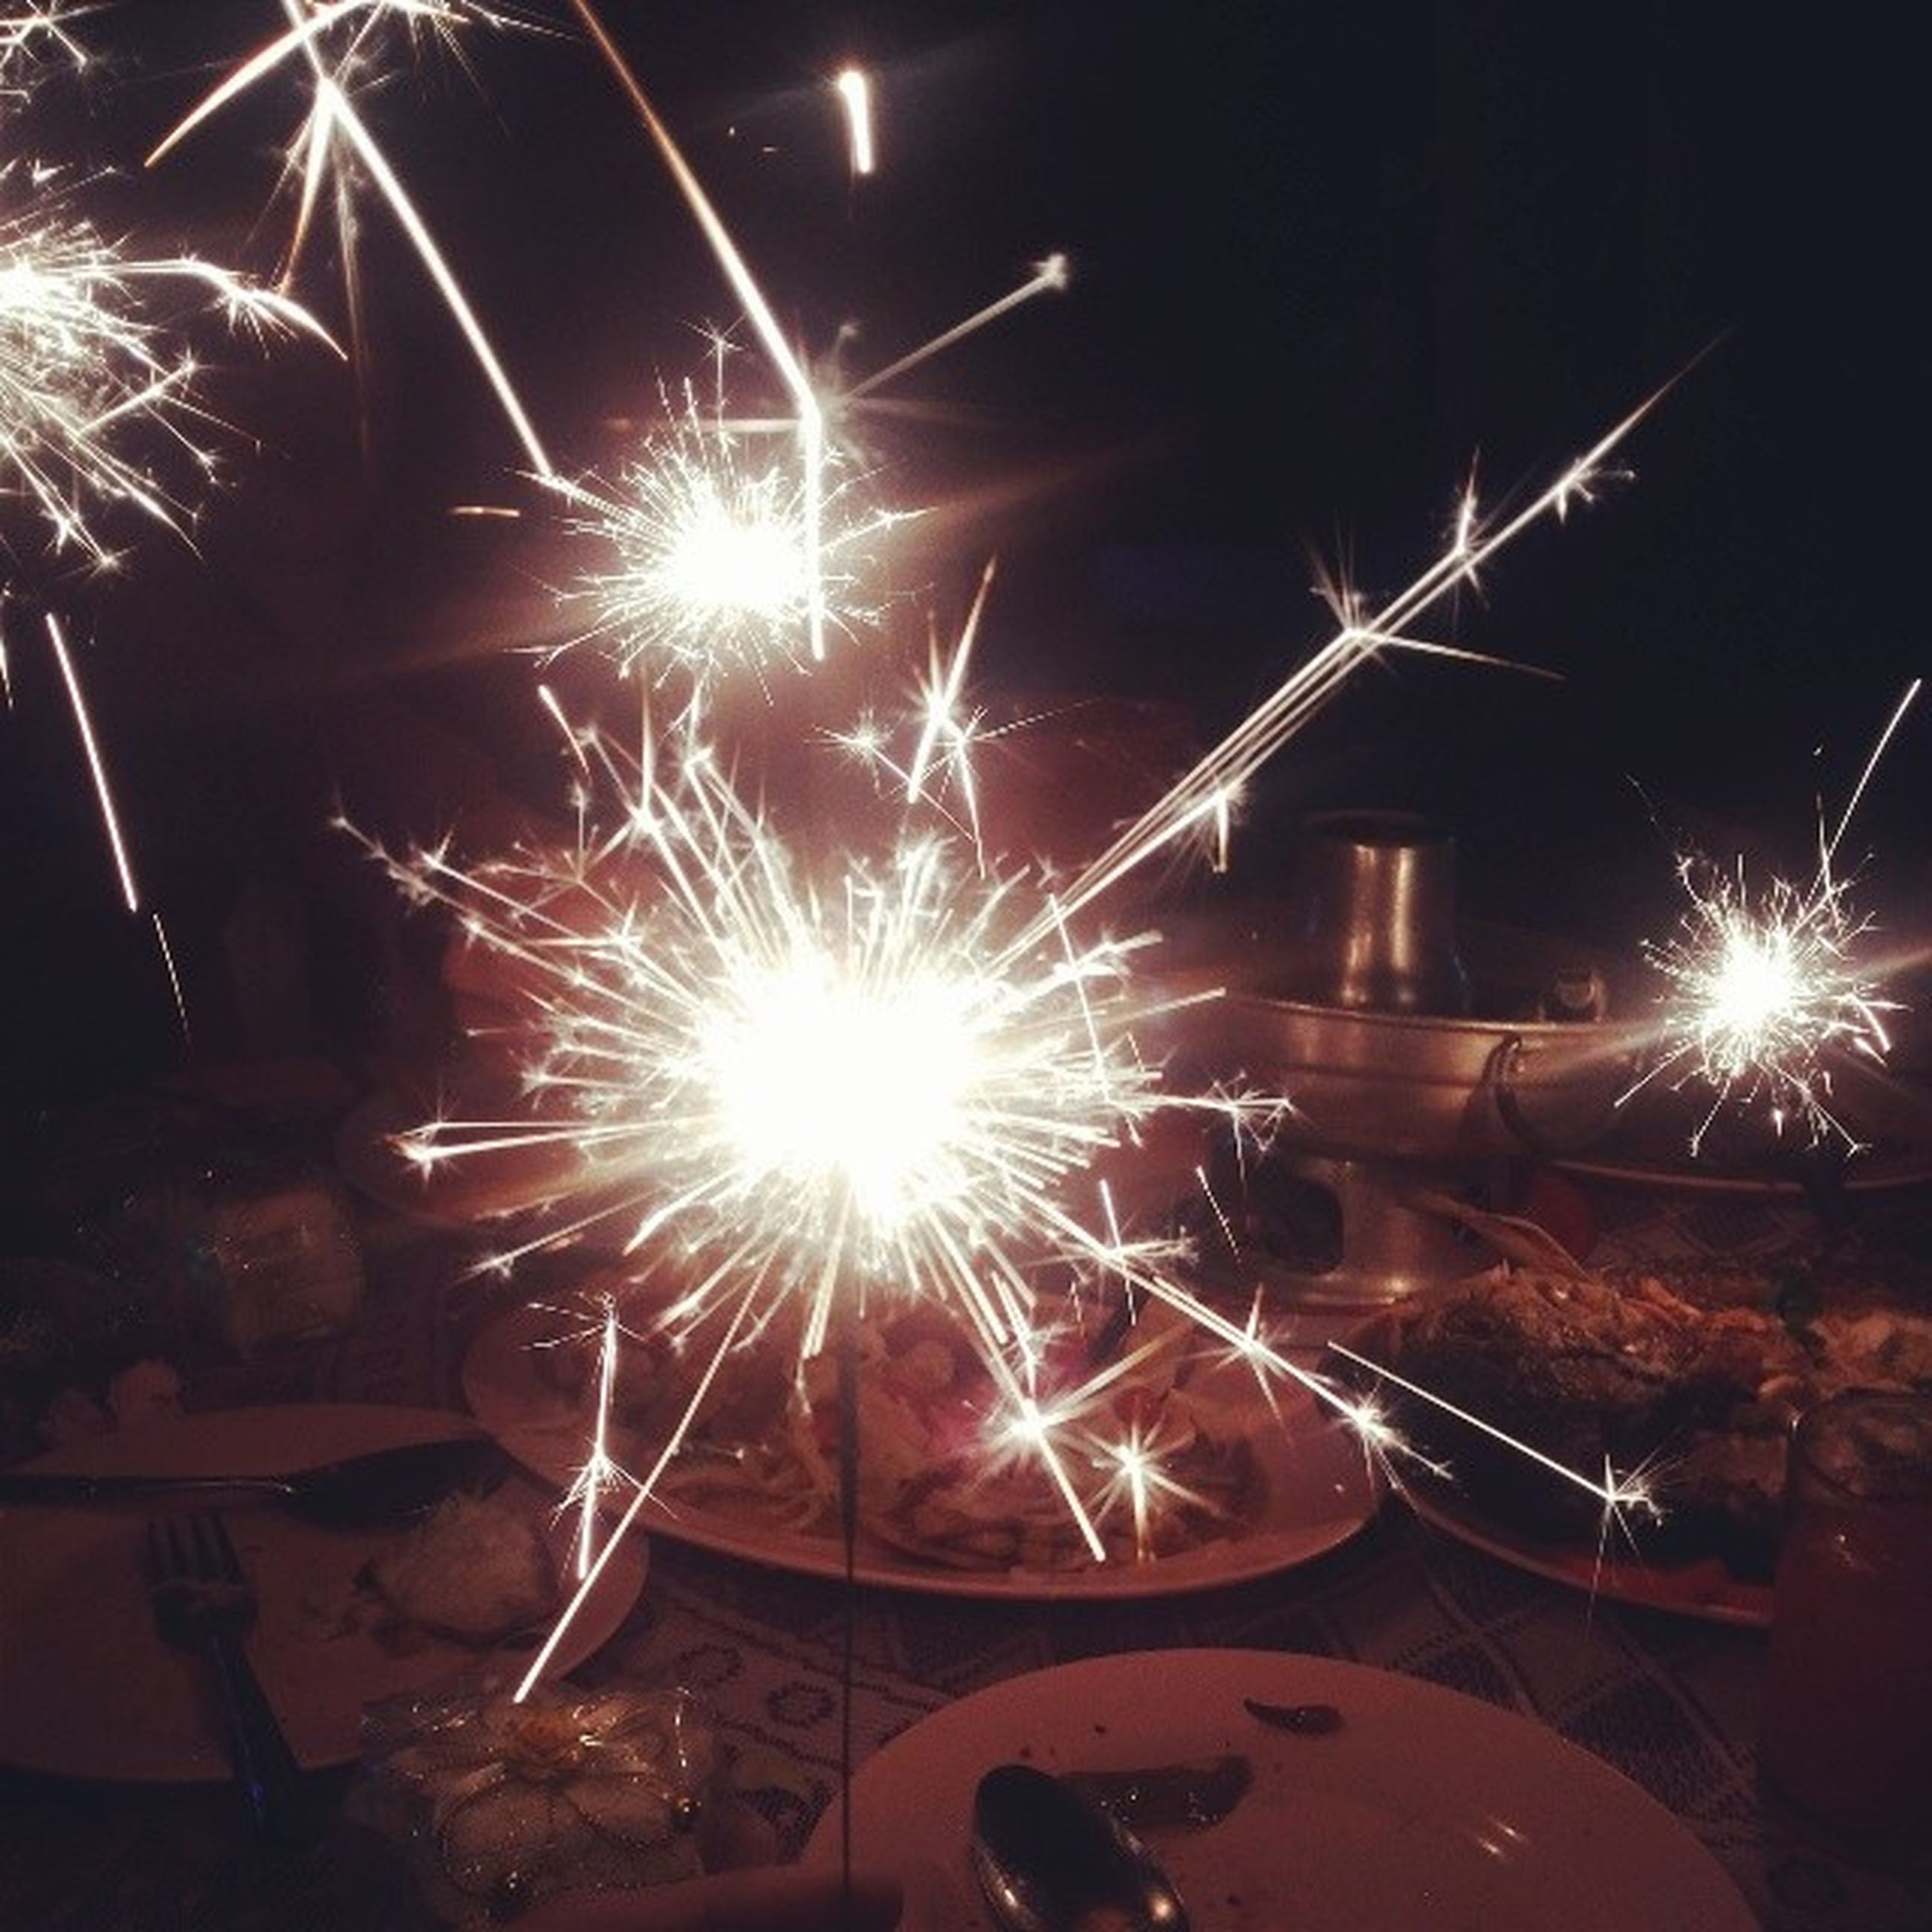 night, illuminated, glowing, fire - natural phenomenon, long exposure, burning, arts culture and entertainment, lighting equipment, motion, light - natural phenomenon, sparks, celebration, dark, exploding, event, flame, firework display, firework - man made object, lit, heat - temperature